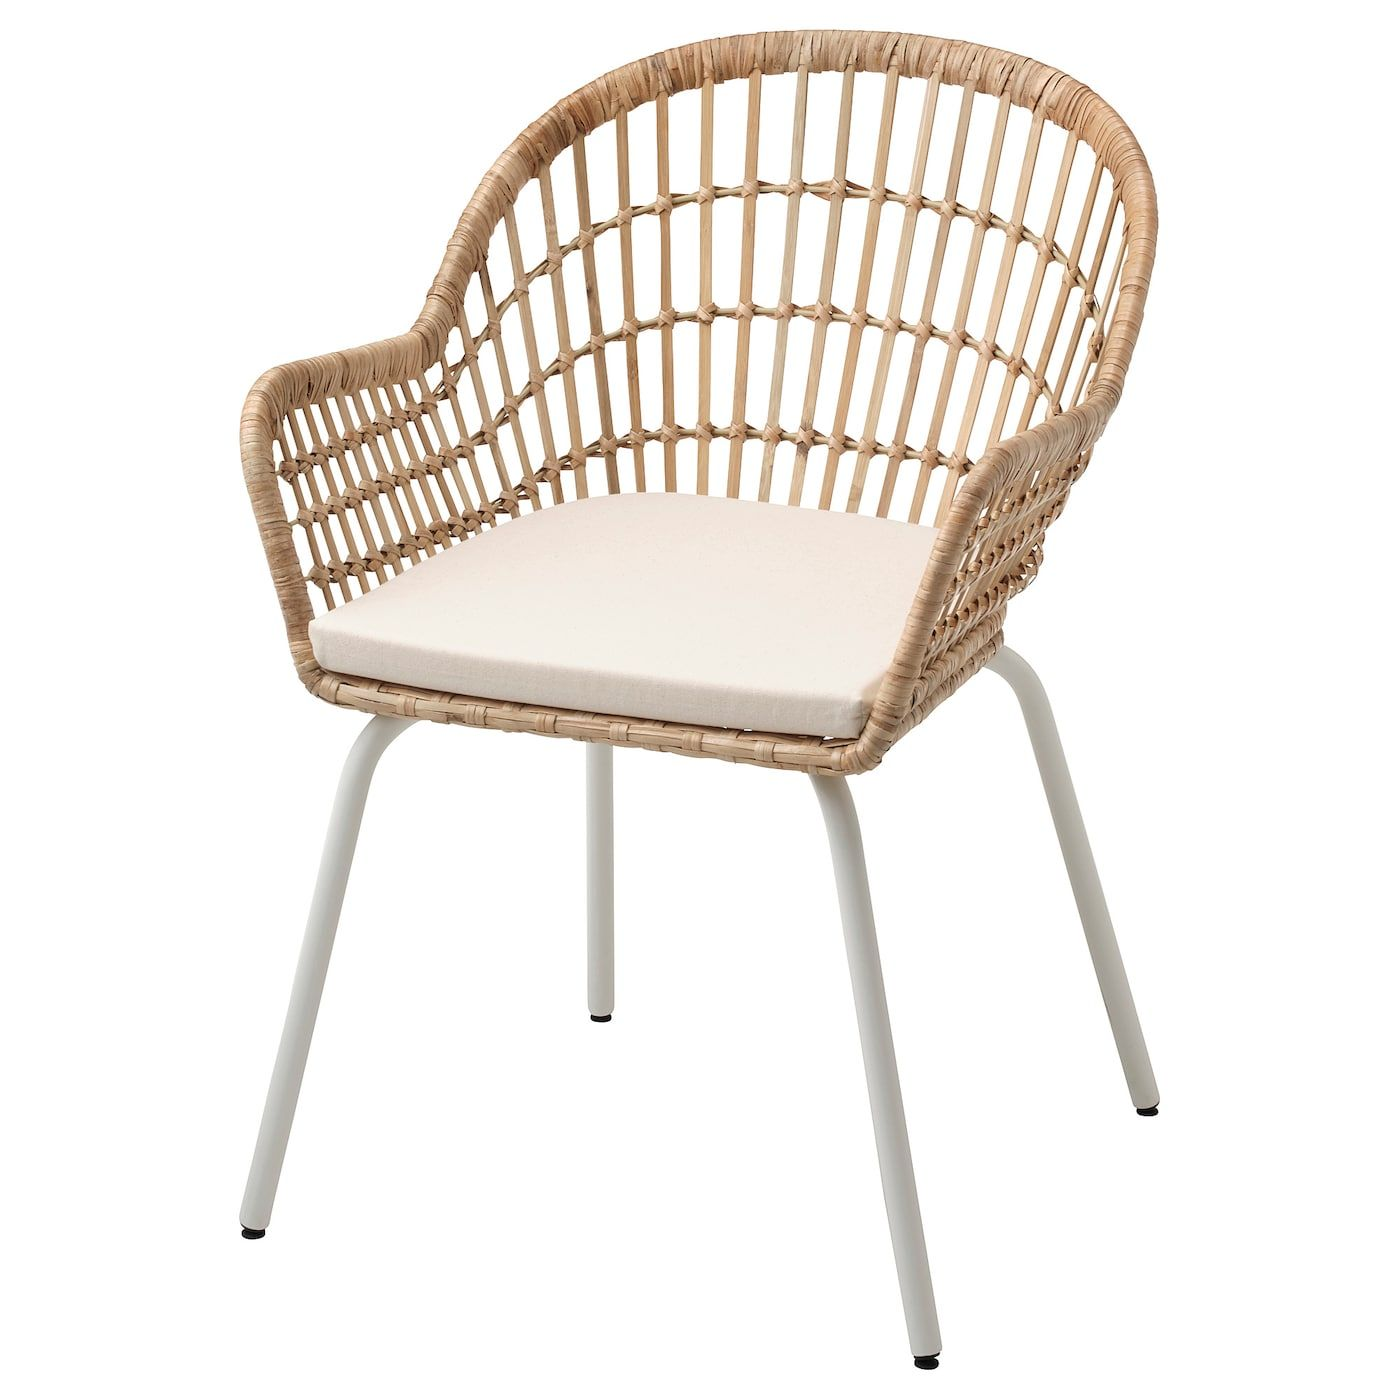 NILSOVE NORNA Chair with chair pad, rattan white, Laila